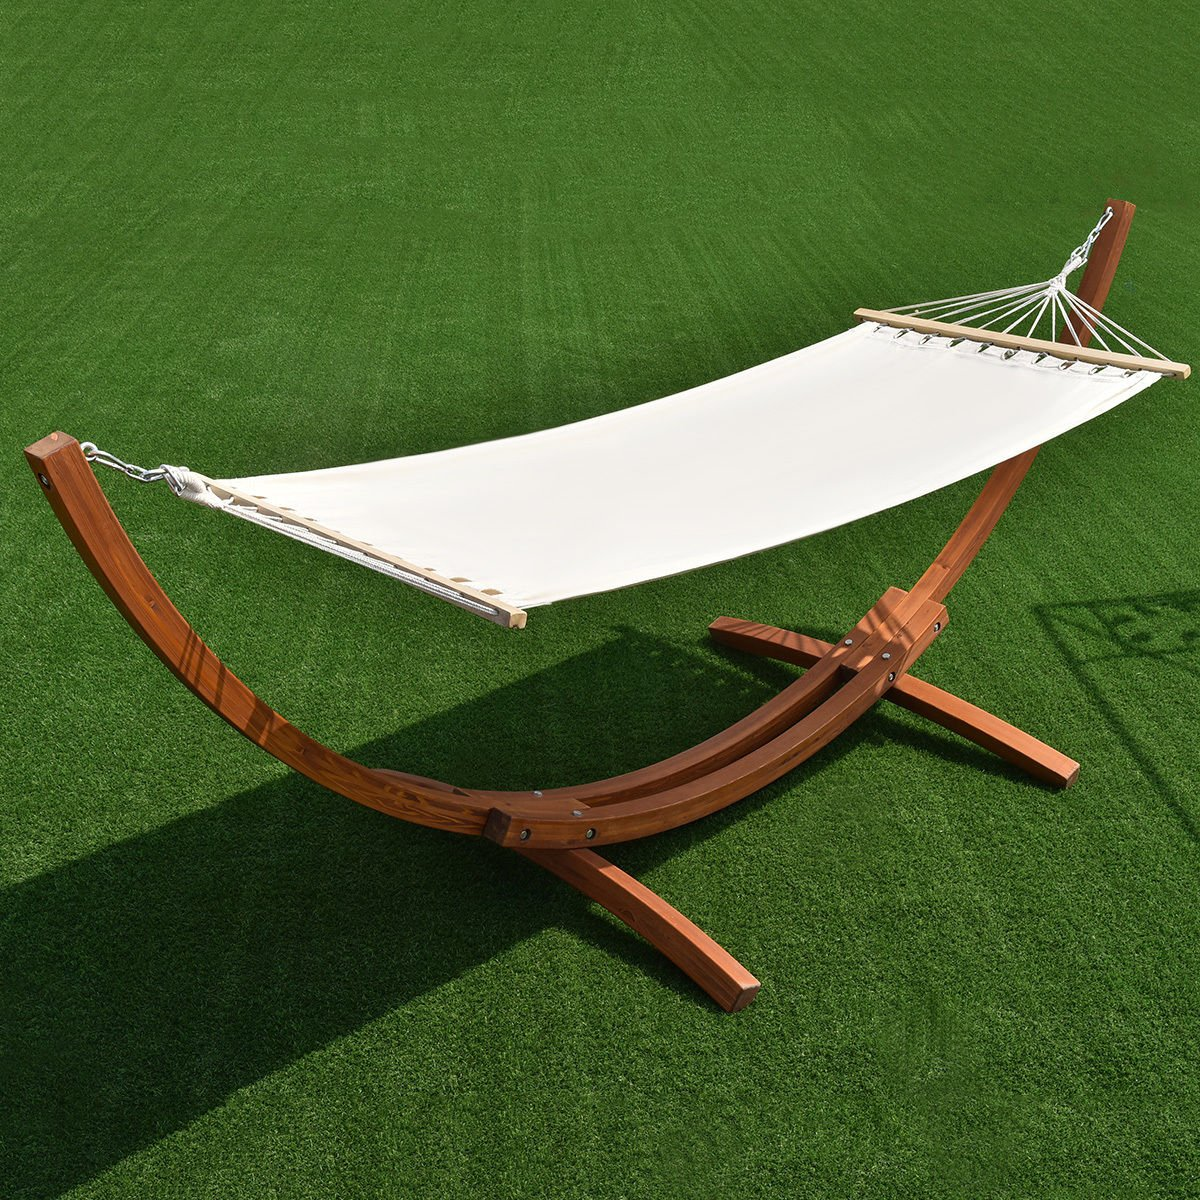 Wooden Curved Arc Hammock Stand with Cotton Garden Outdoor New 142''x50''x51''/Patio & Garden Furniture/Hammocks